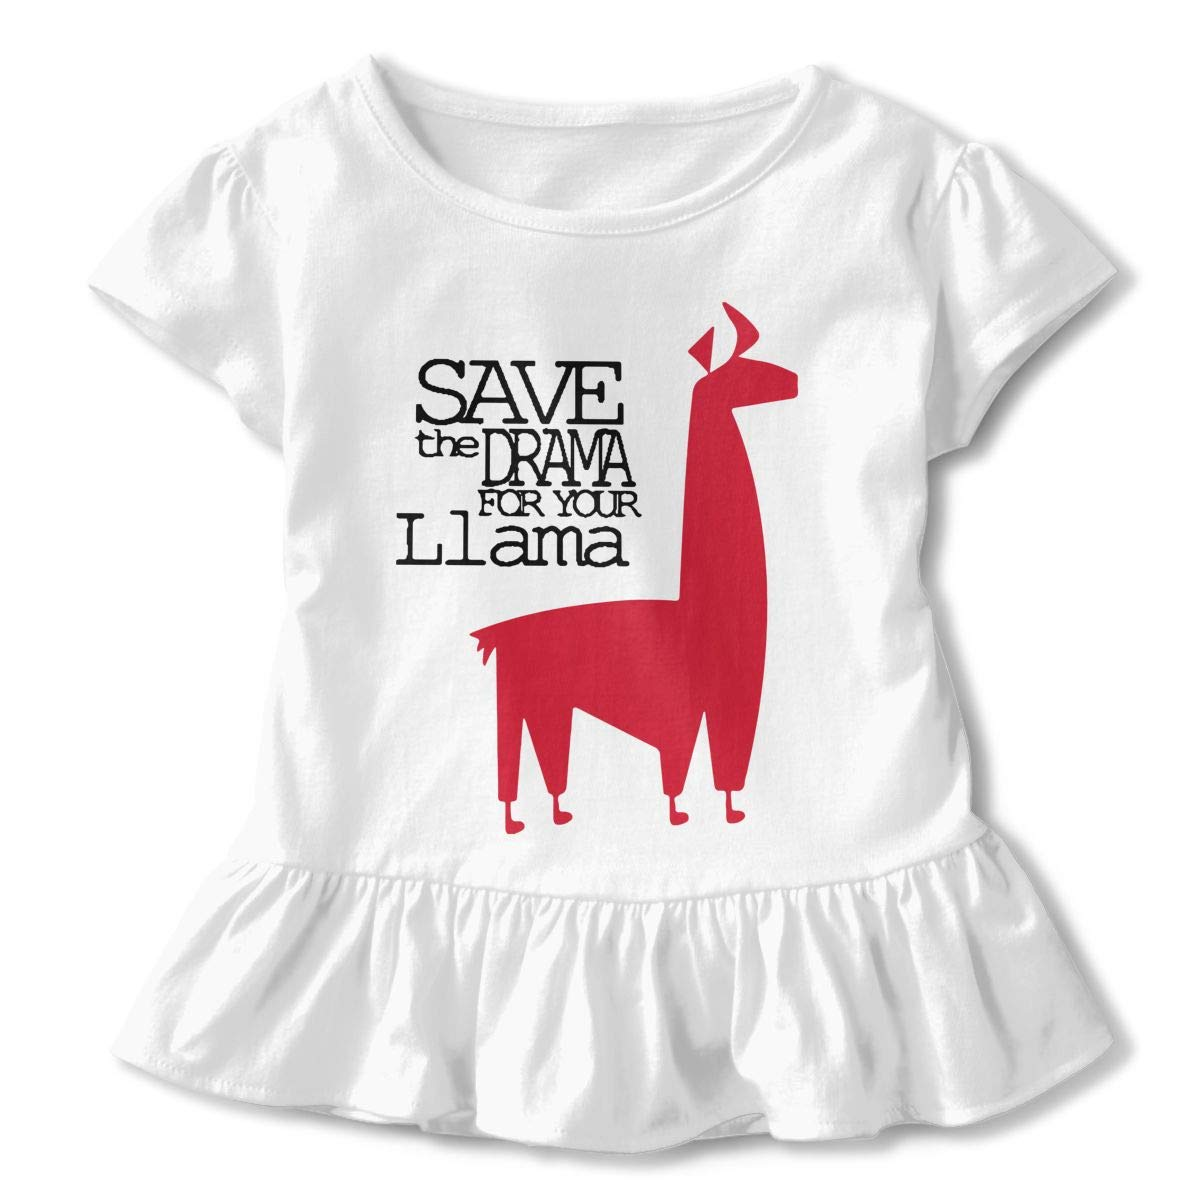 HYBDX9T Little Girls Save The Drama for Your Llama Funny Short Sleeve Cotton T Shirts Basic Tops Tee Clothes